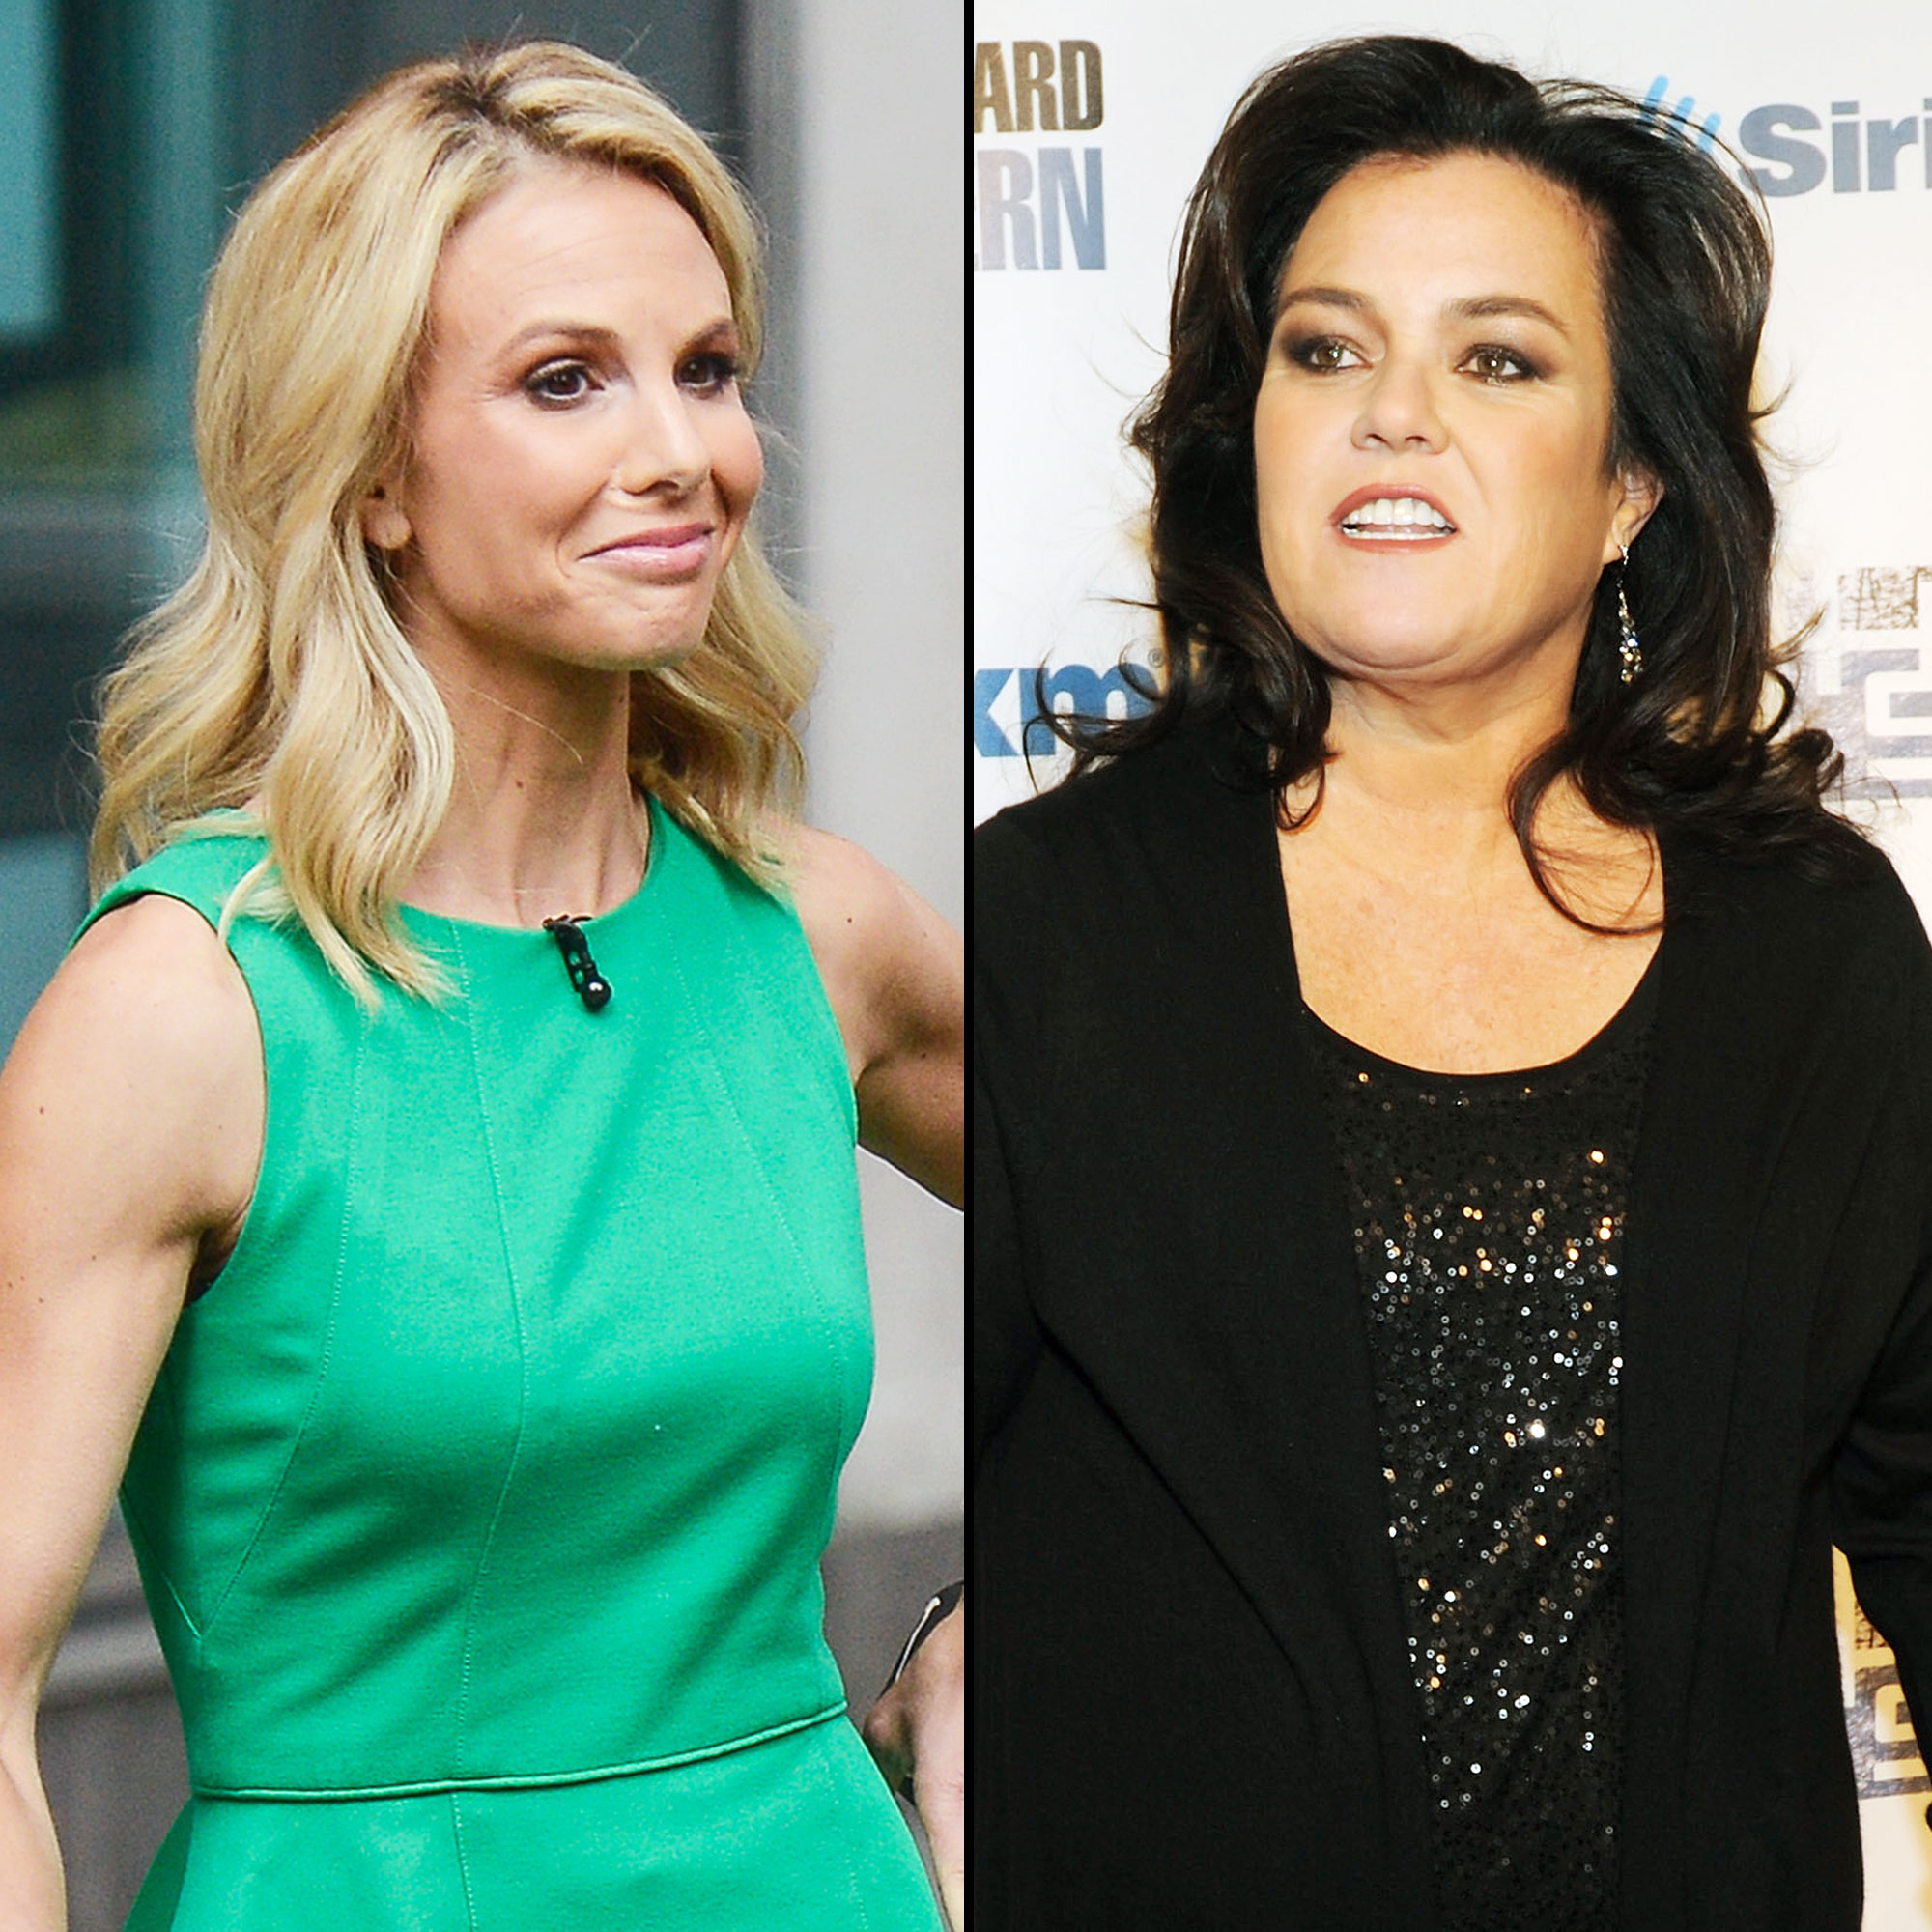 Elisabeth Hasselbeck Rosie O'Donnell Tumultuous Past - Elisabeth Hasselbeck Rosie O'Donnell Tumultuous Past